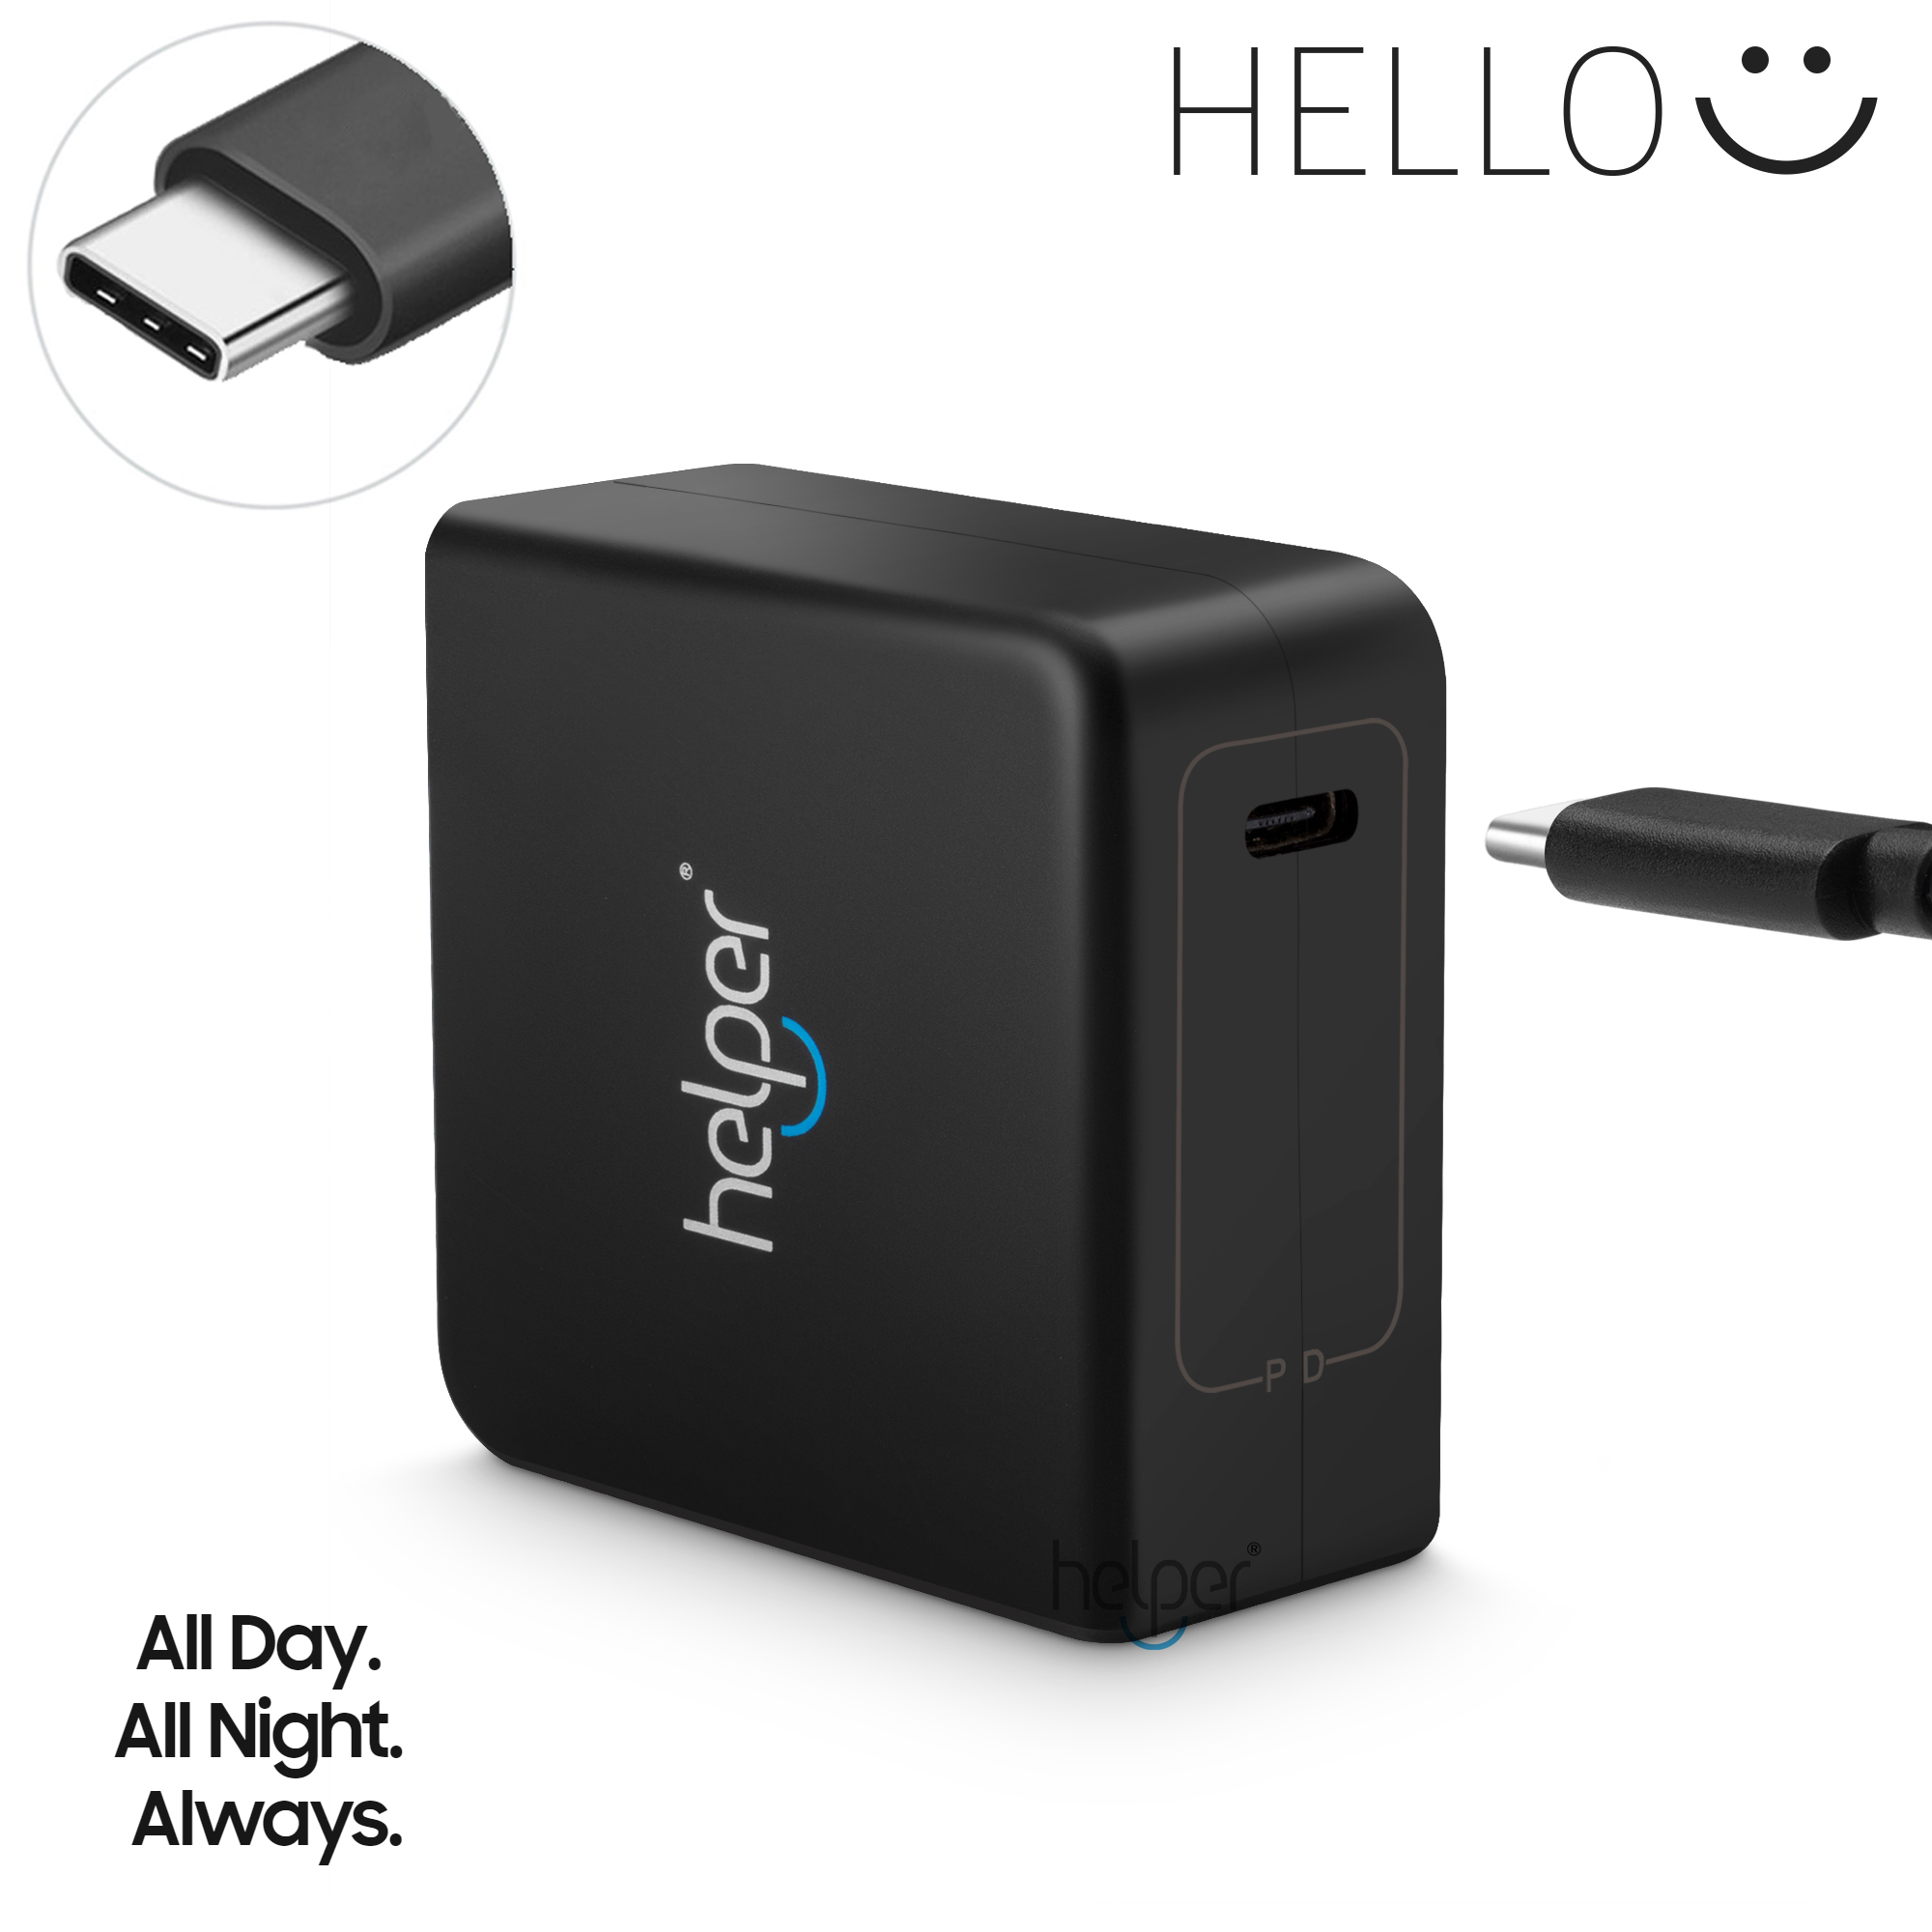 Helper USB Type C PD Wall Charger Fast Charging Power Adapter for Elite x2 CHIWEI Thinker usb type c pd wall charger fast charging power adapter for new macbook pro dell 9350 acer r13 samsung asus hp